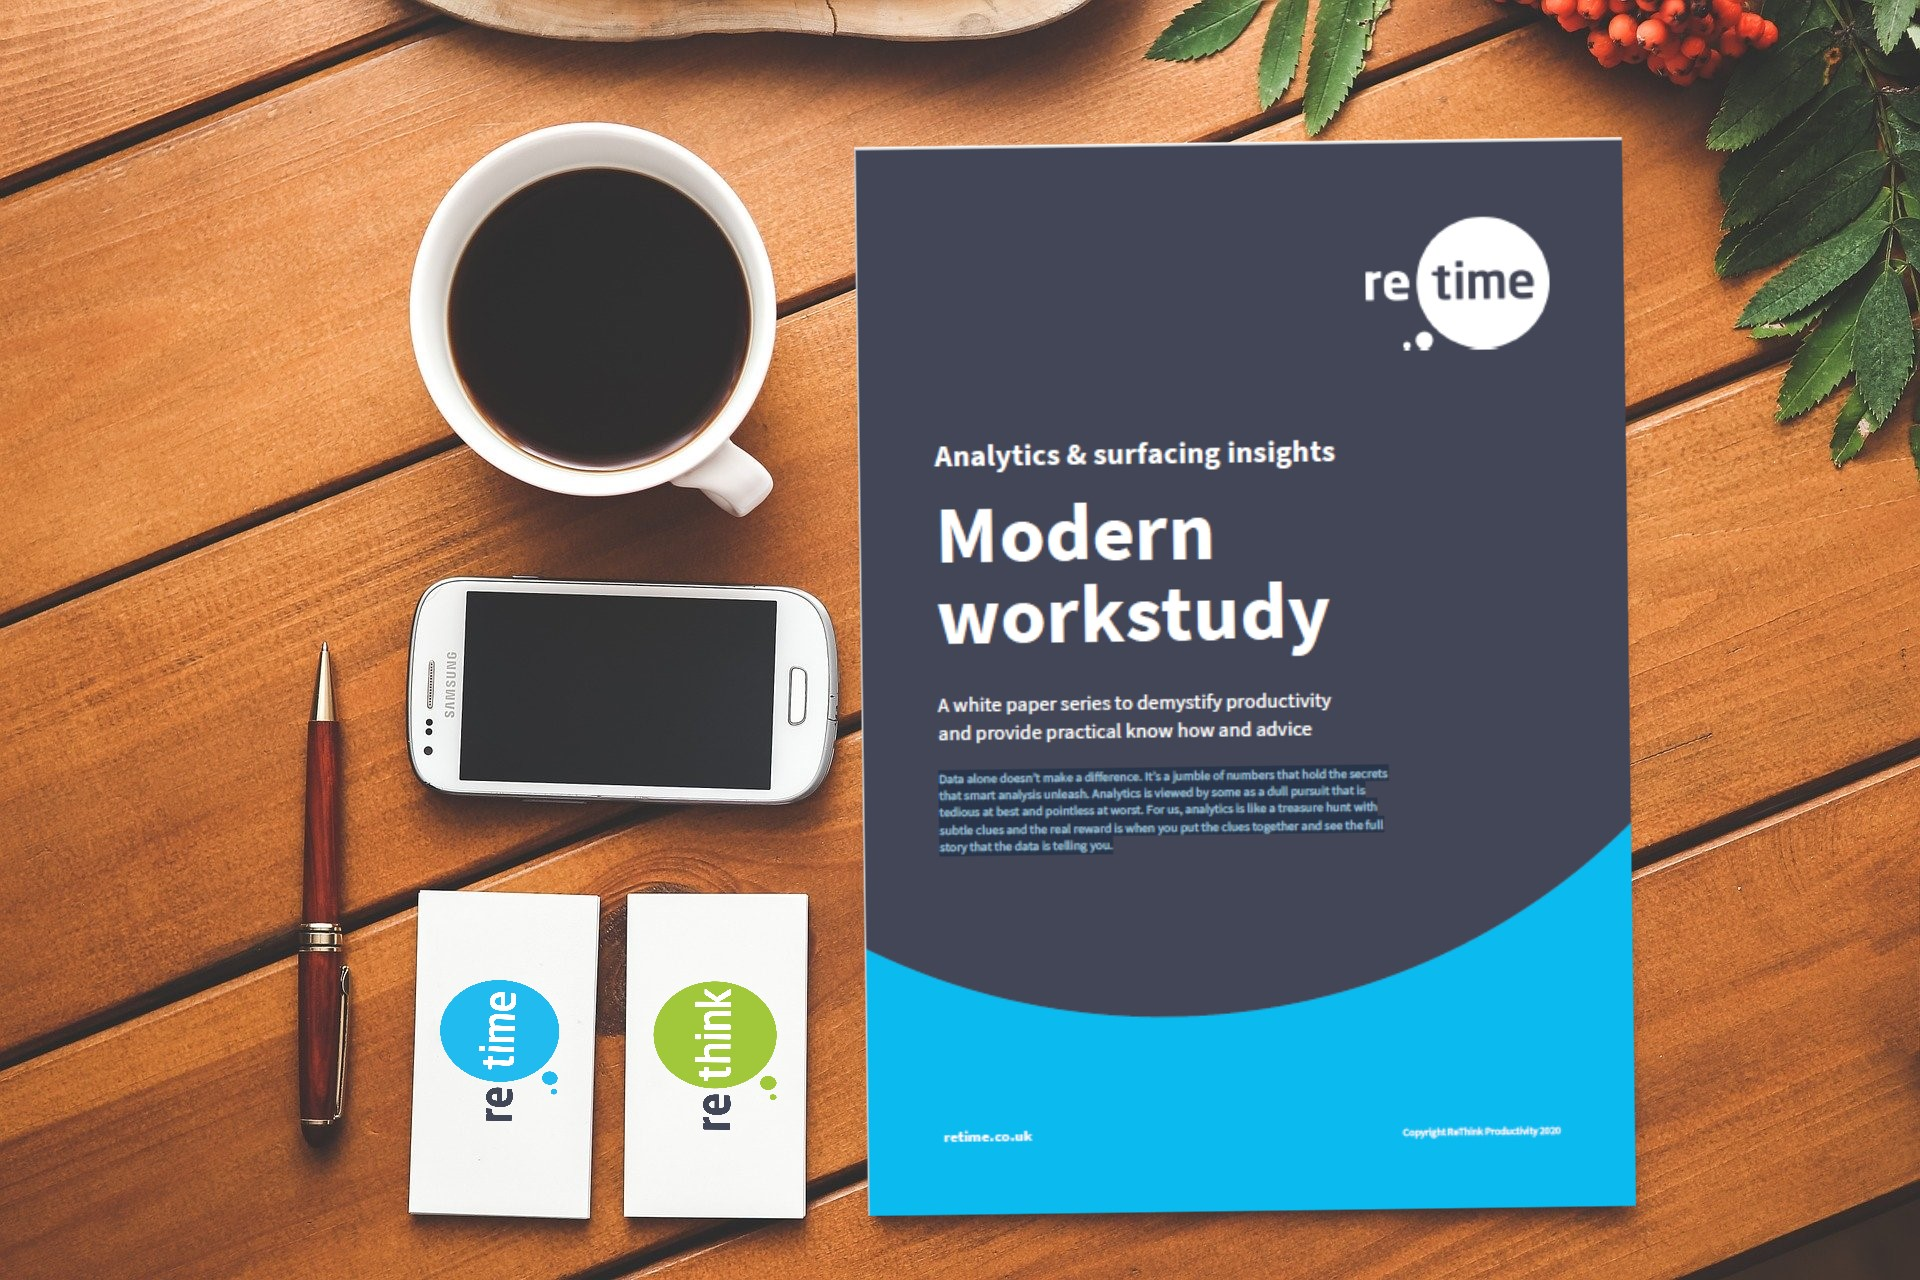 ReTime - Analytics & Surfacing Insights Modern Workstudy